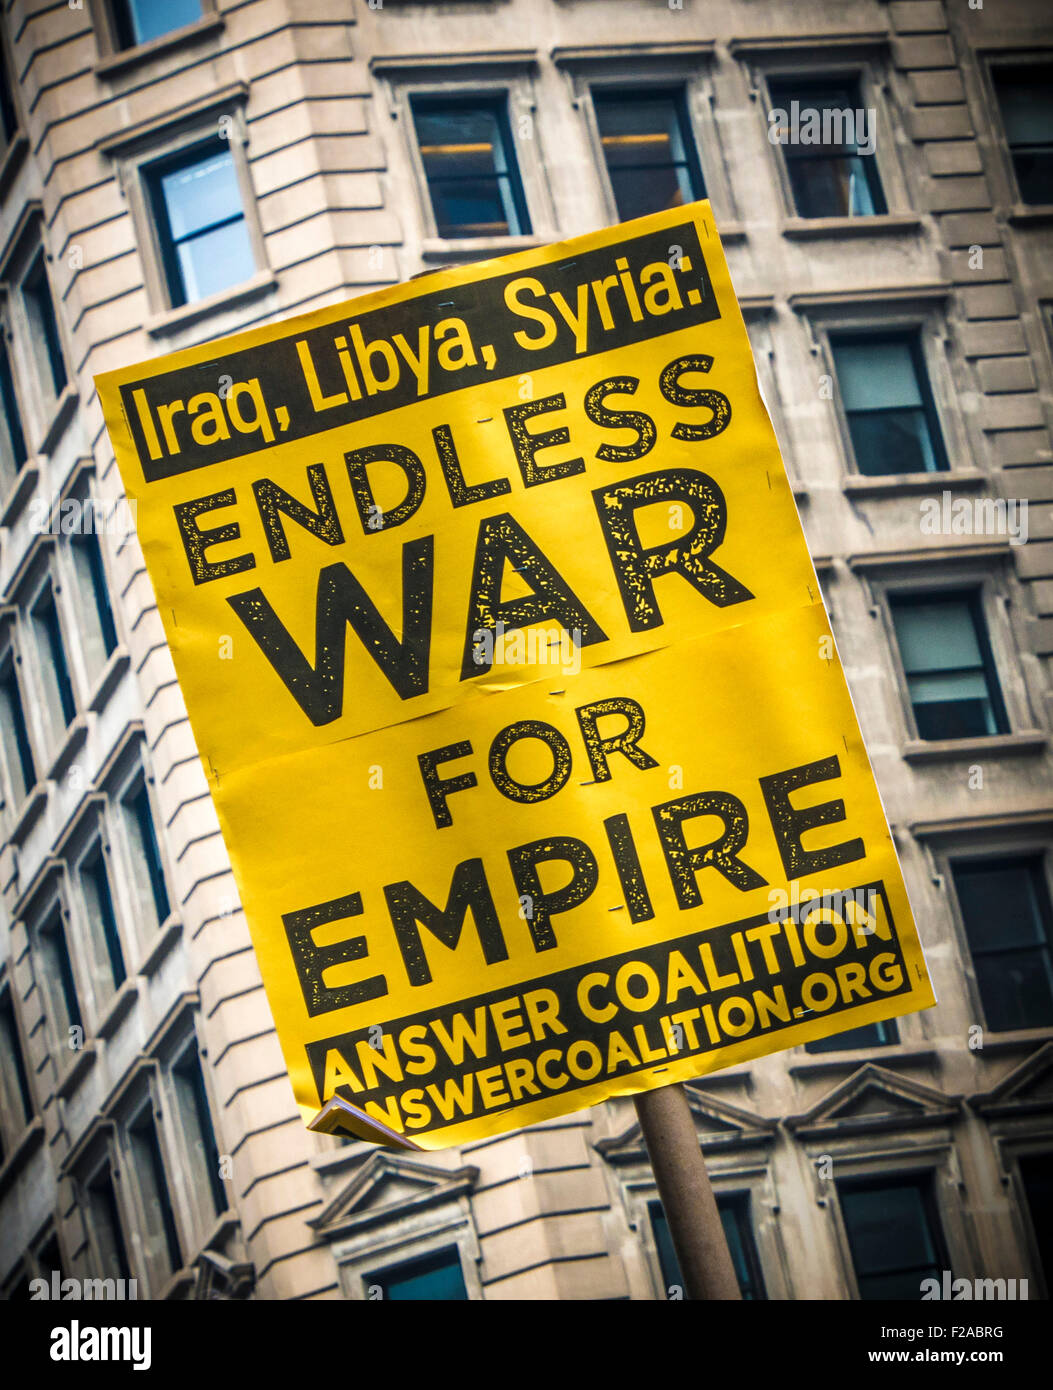 Placard in protest to end war in Iraq, Libya and Syria. - Stock Image